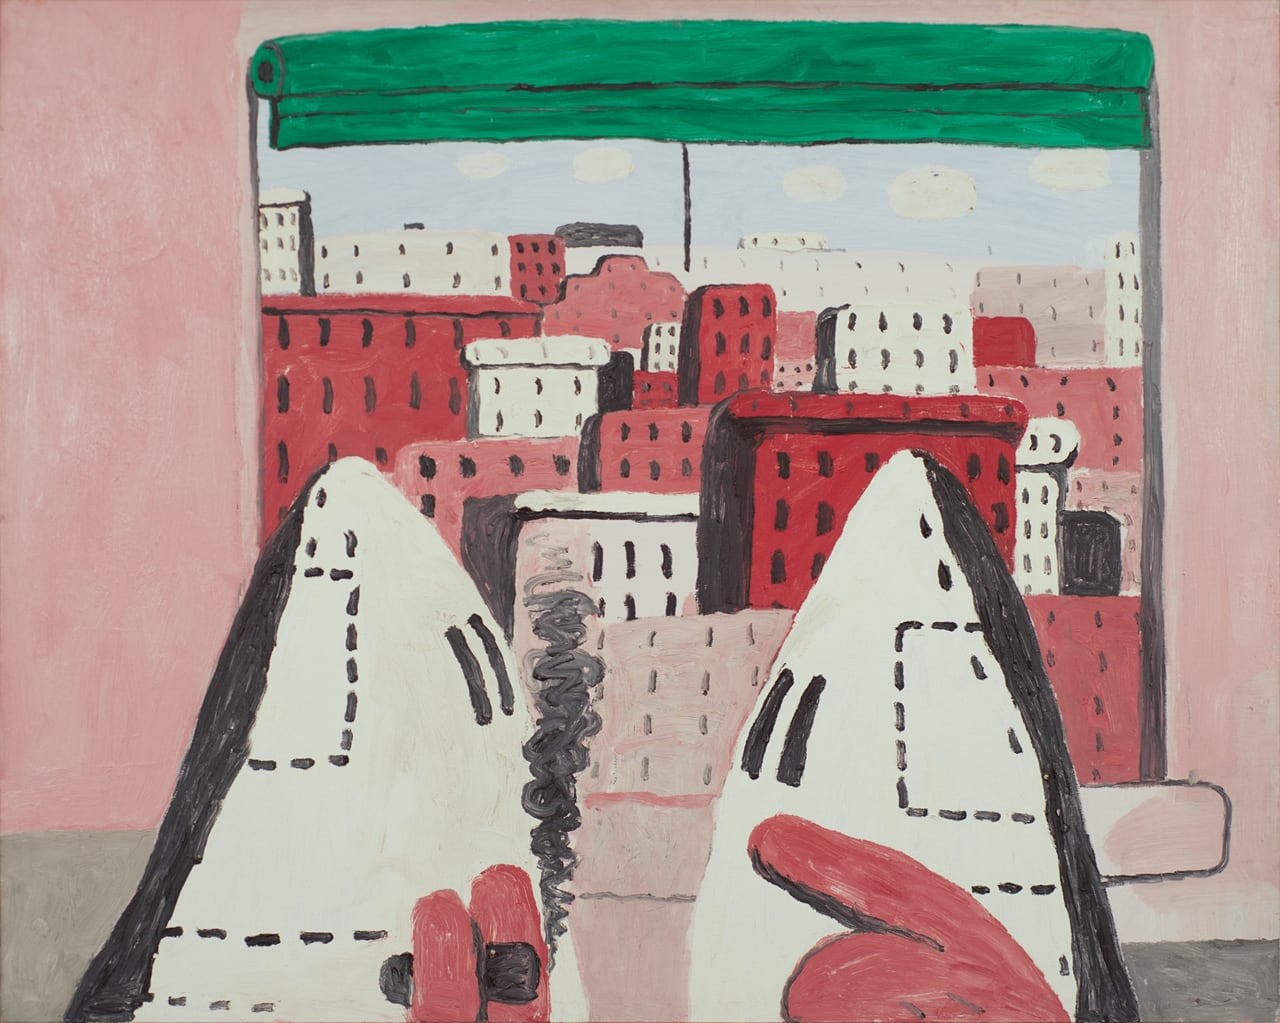 Philip Guston, Open Window II, 1969. Oil on panel. © The Estate of Philip Guston. Courtesy Hauser & Wirth. Private Collection